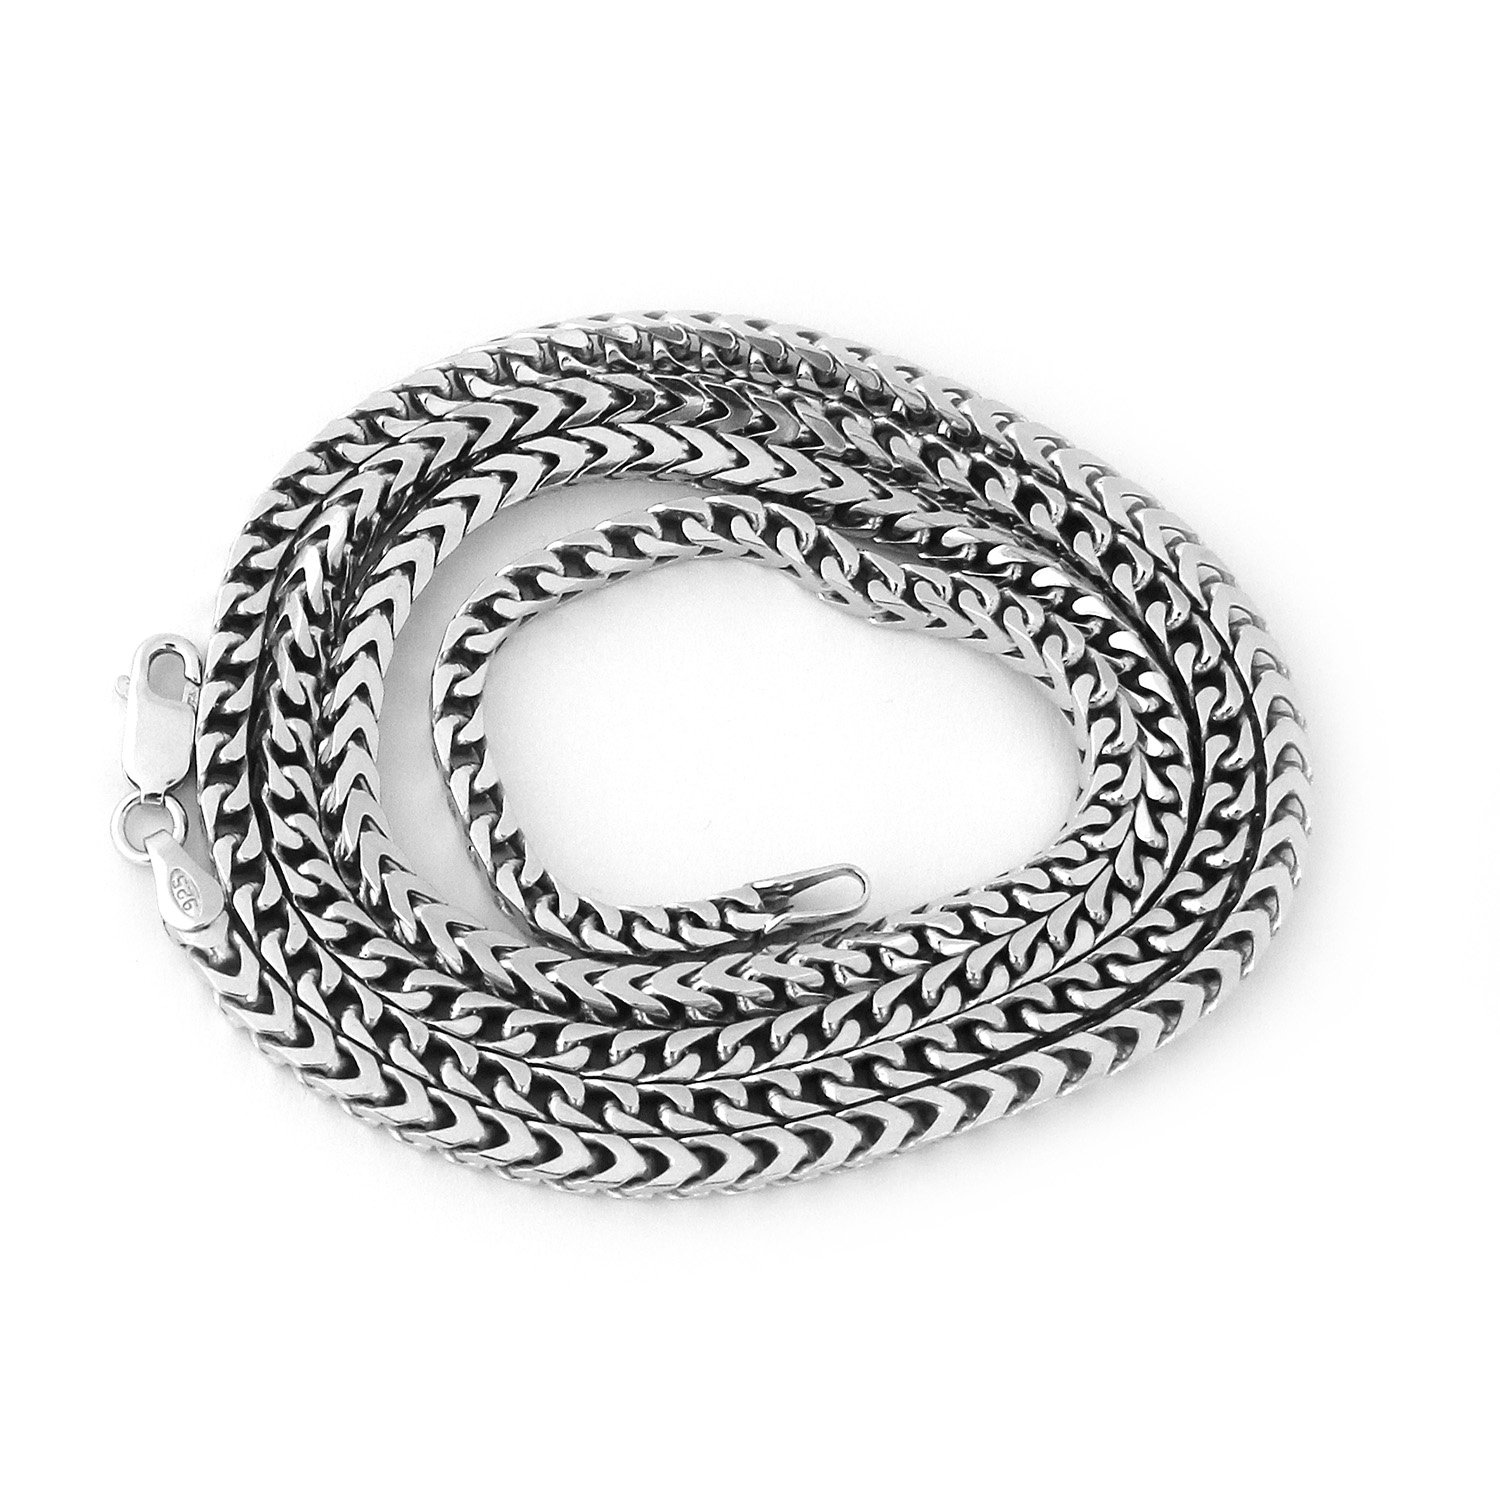 Men's Solid Sterling Silver Rhodium Plated 3mm Comfort Franco Chain Necklace, 24'' by Beauniq (Image #1)